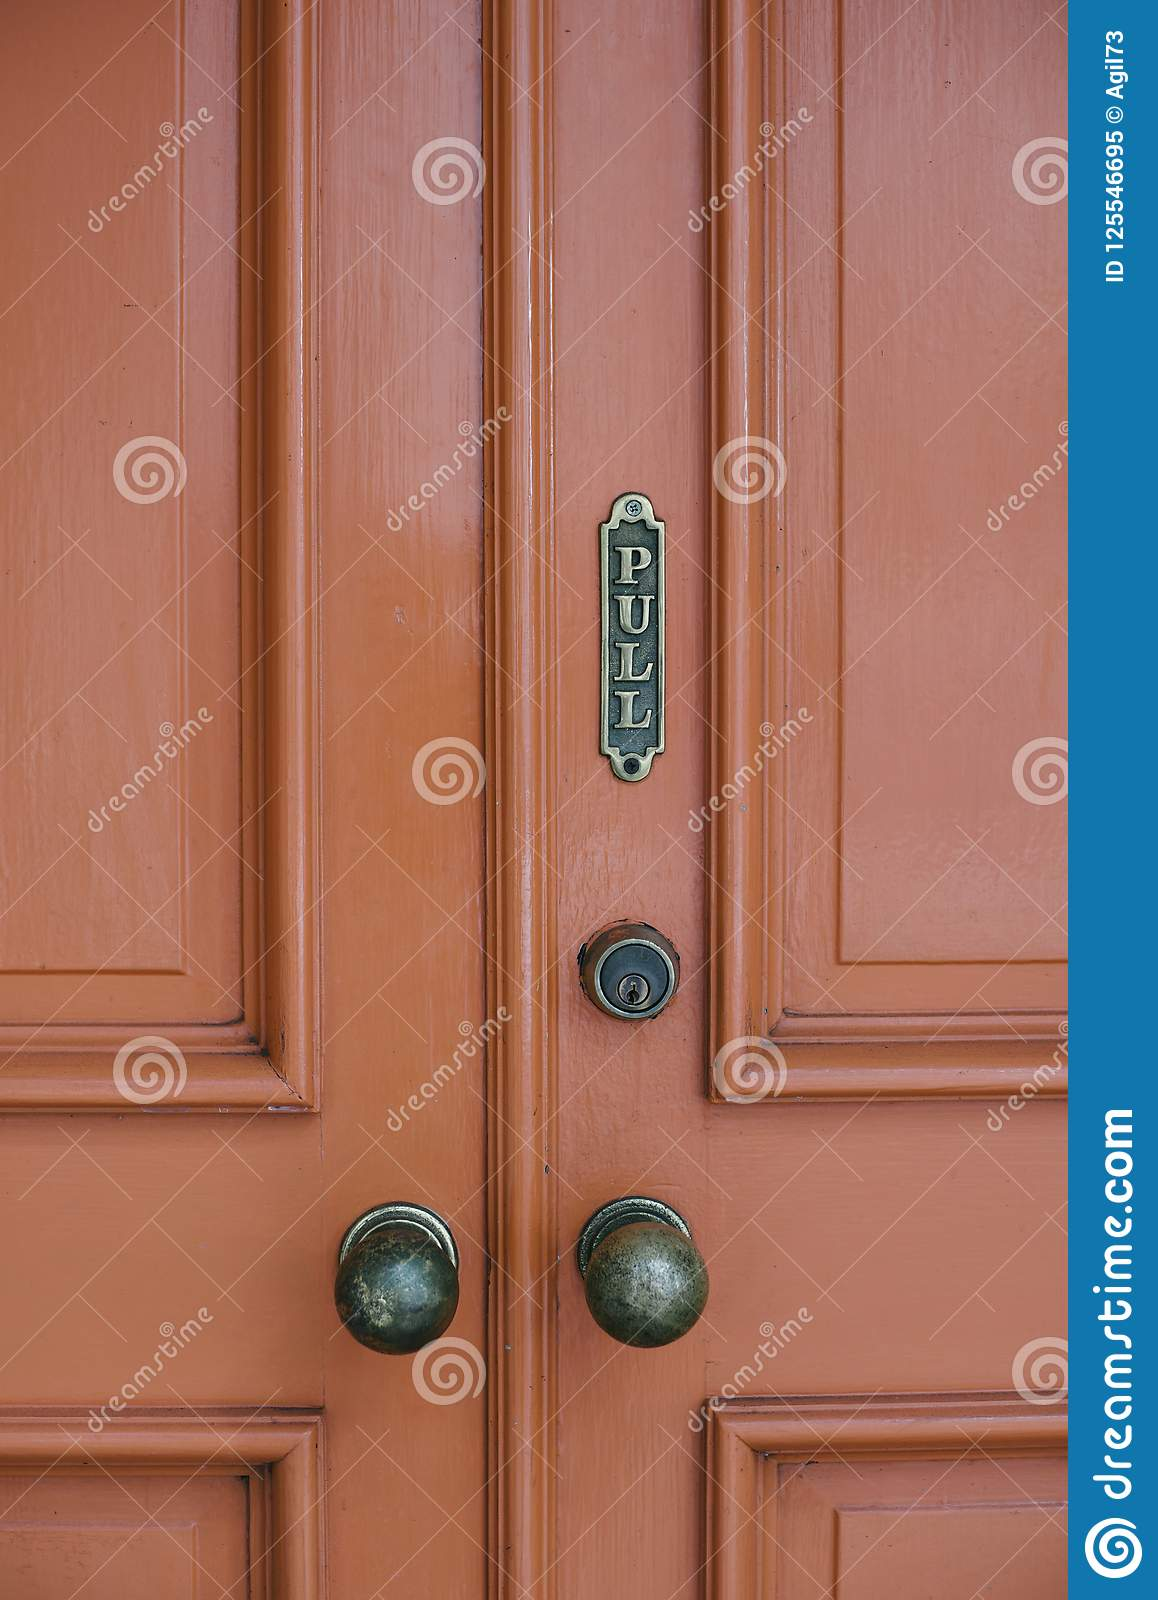 Old Red Door with Pull Sign and Old Door Knobs